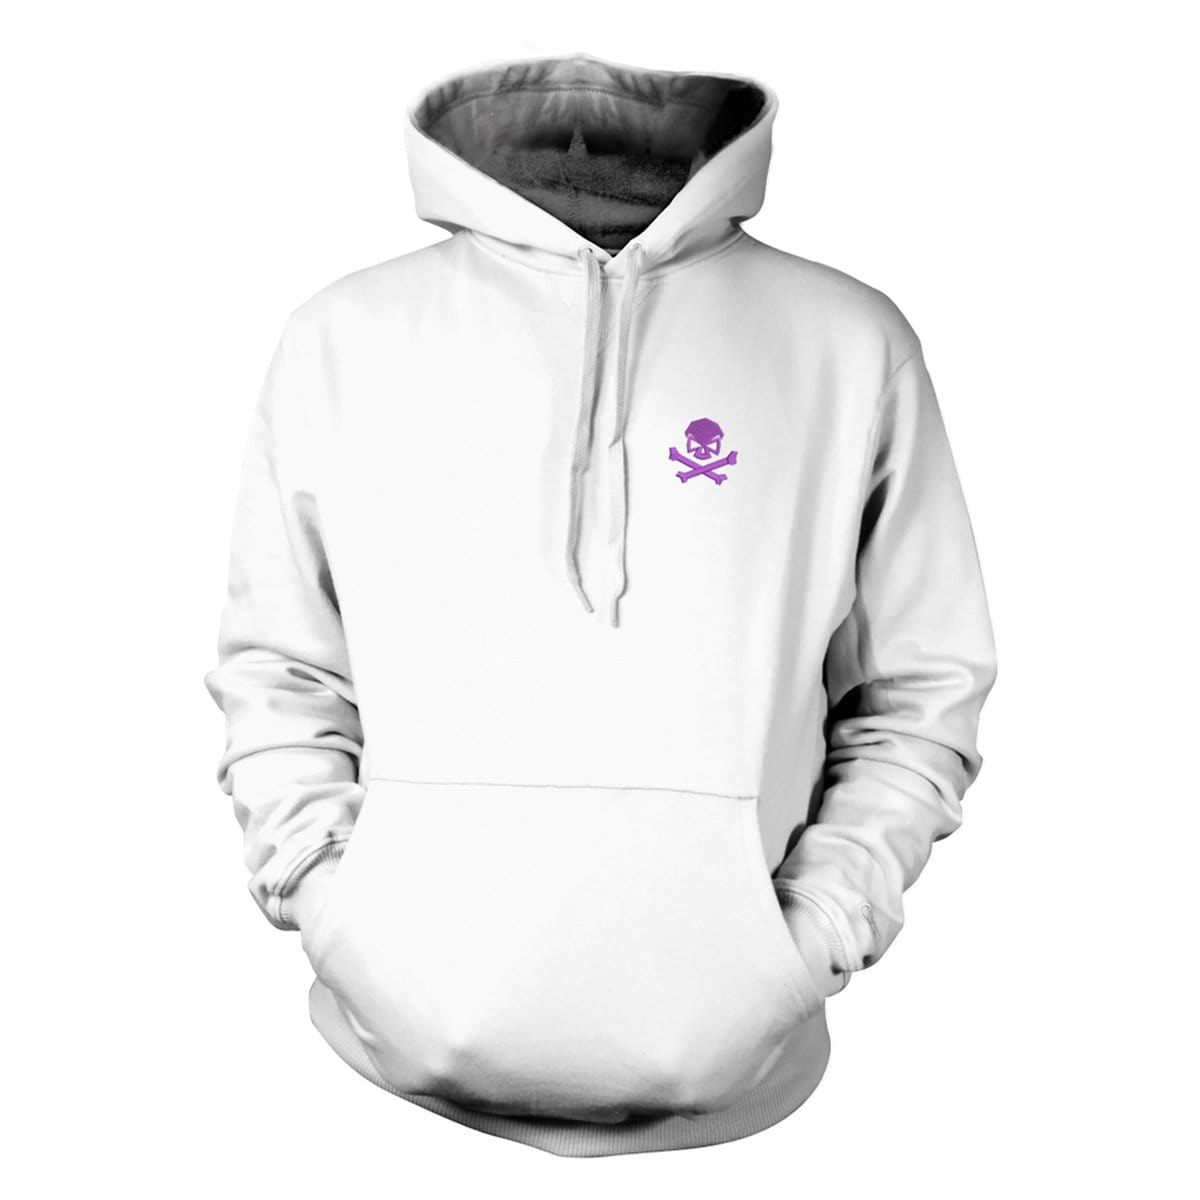 Skull & Bones Hoodie (Embroidered) - White/Purple - Hoodies - Pipe Hitters Union